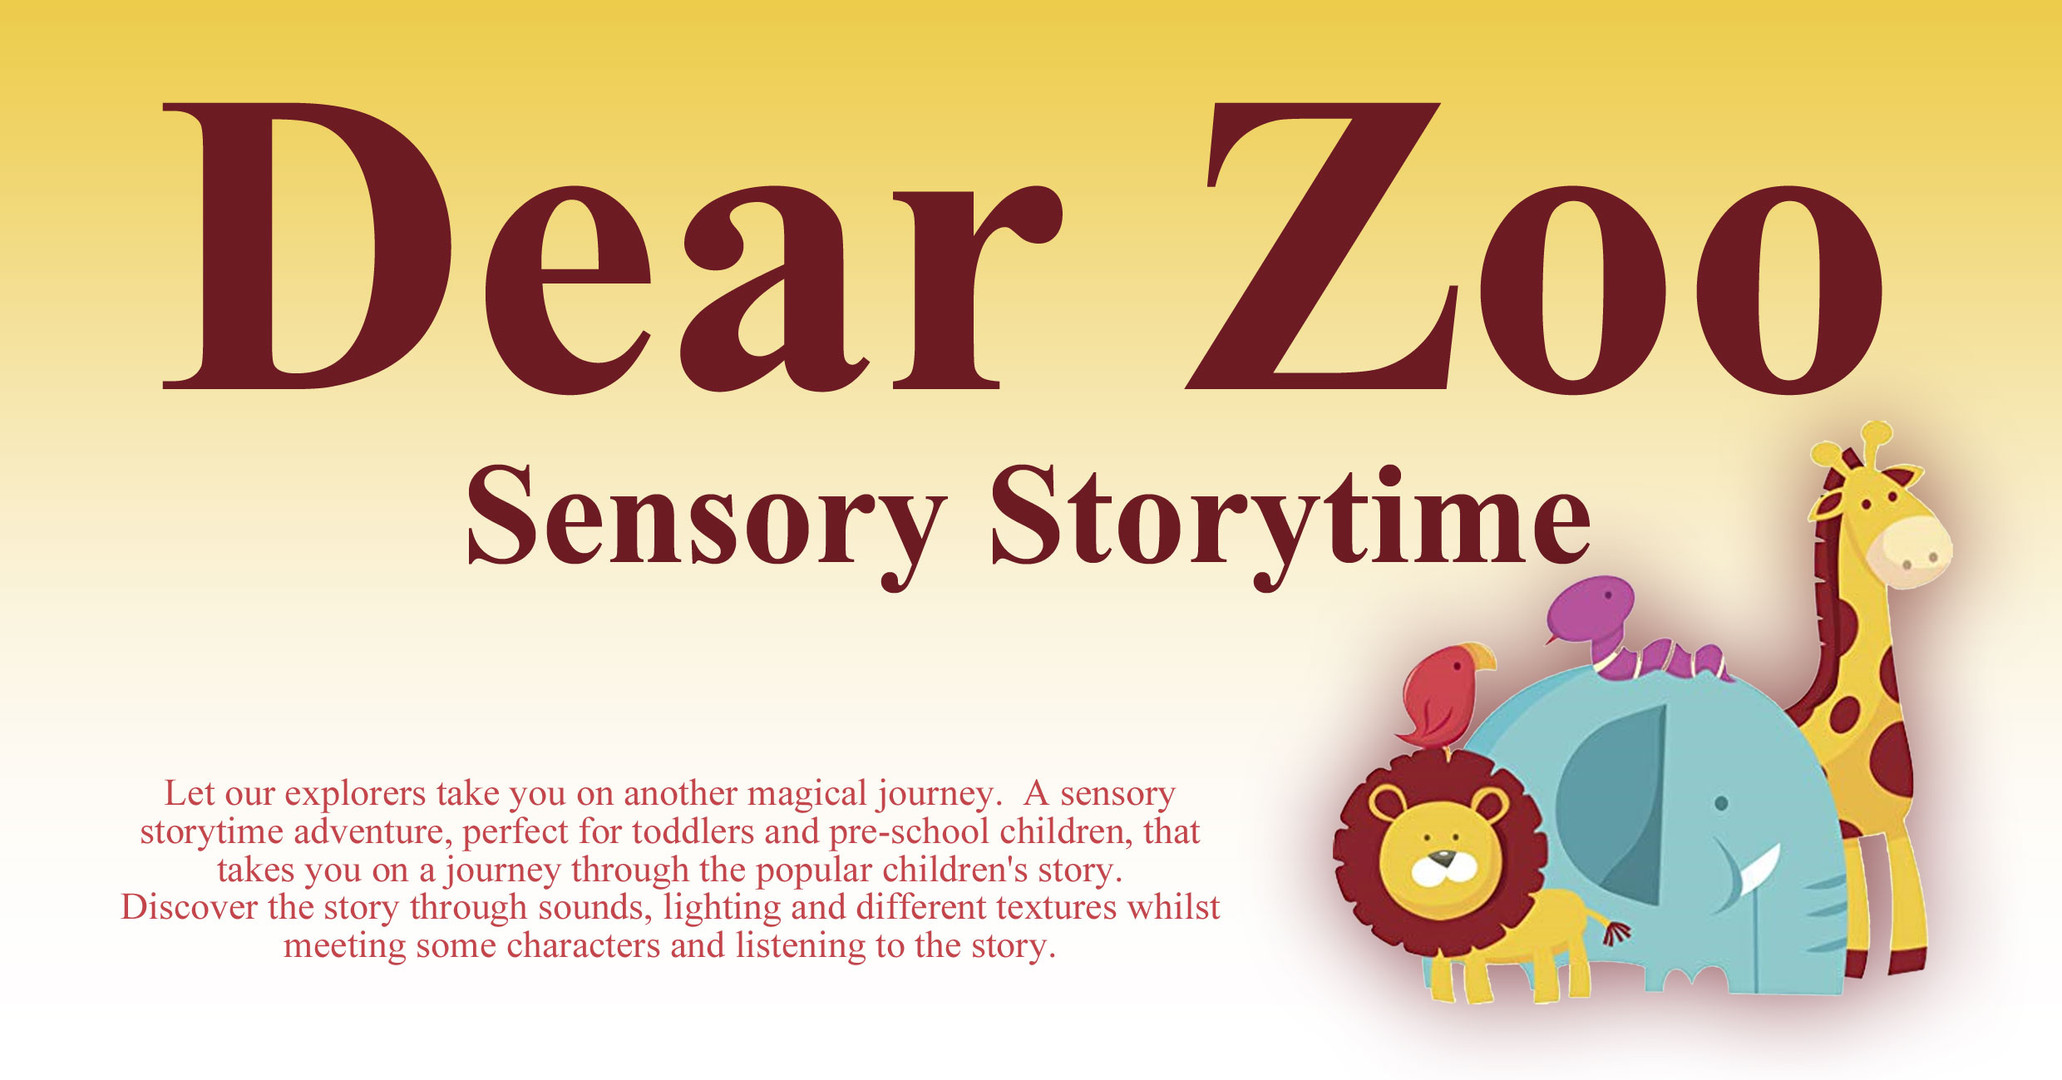 Dear-Zoo-header.jpg